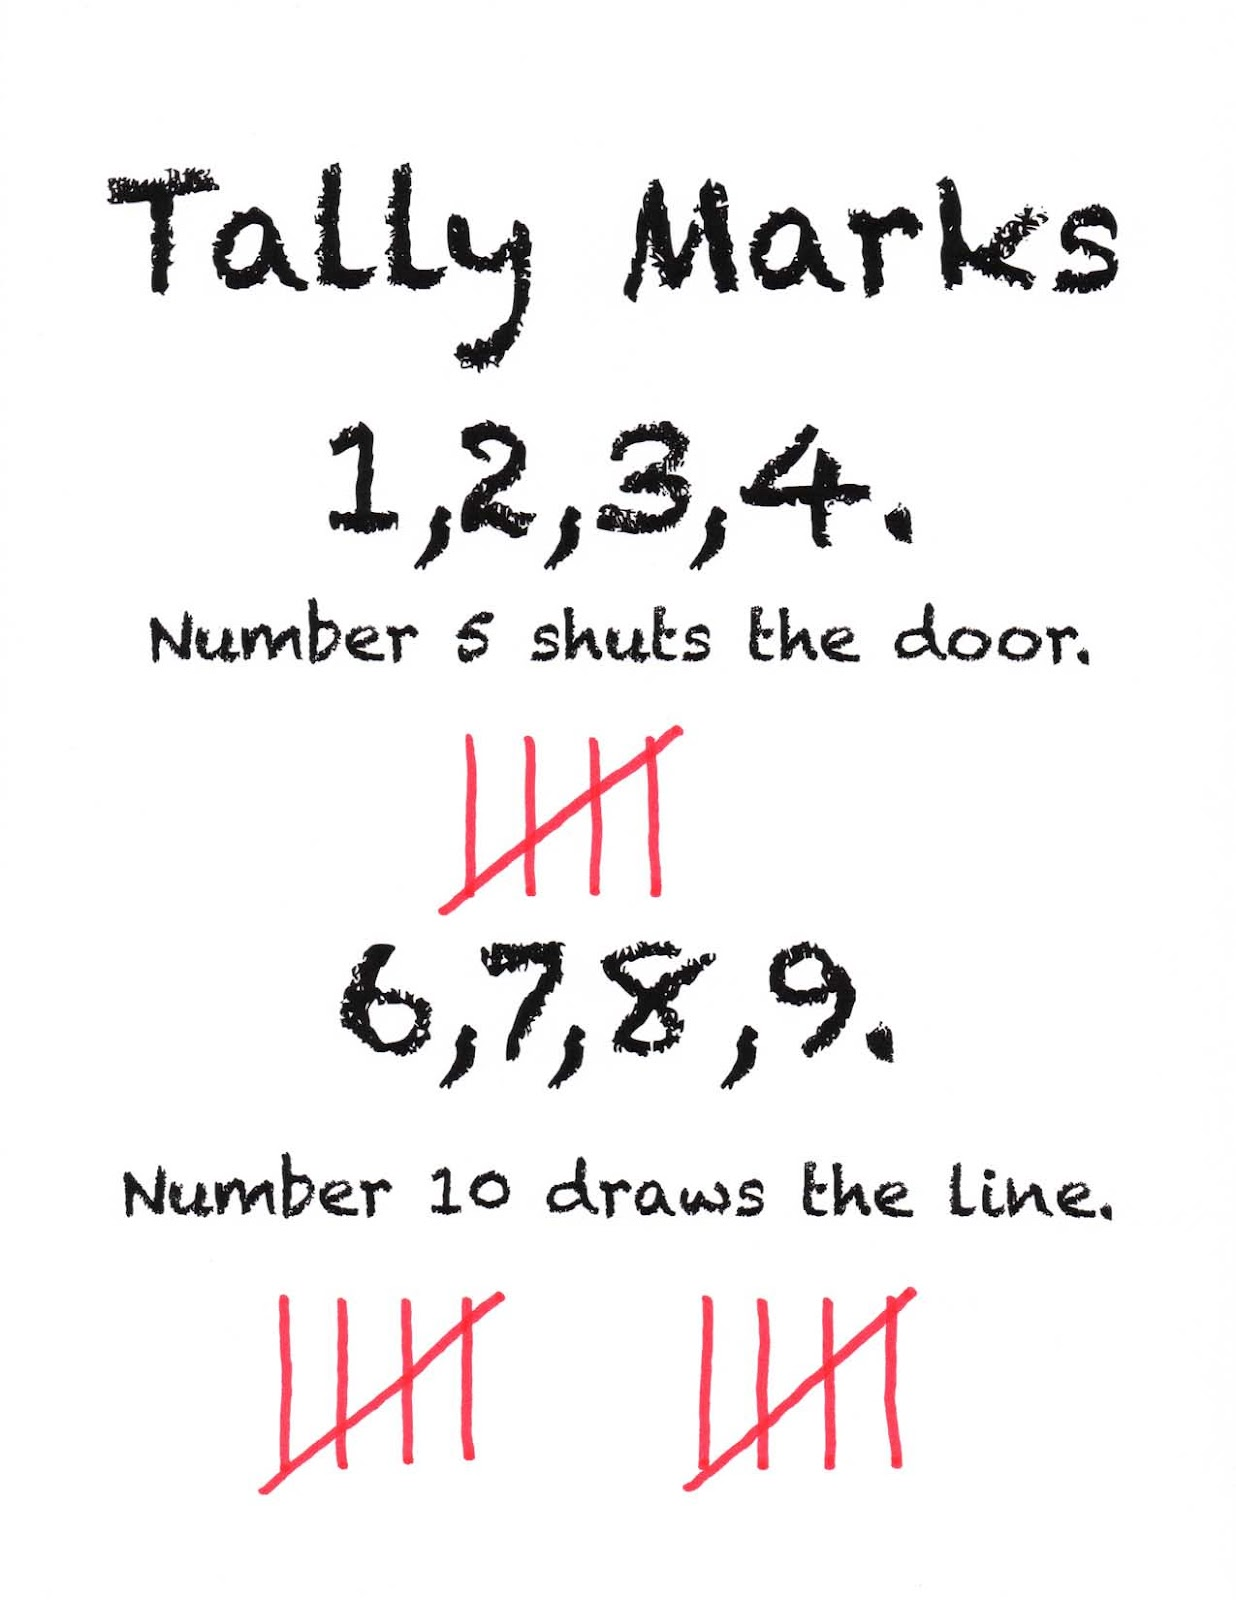 Simple Rhyme To Help Students Remember How To Make Tally